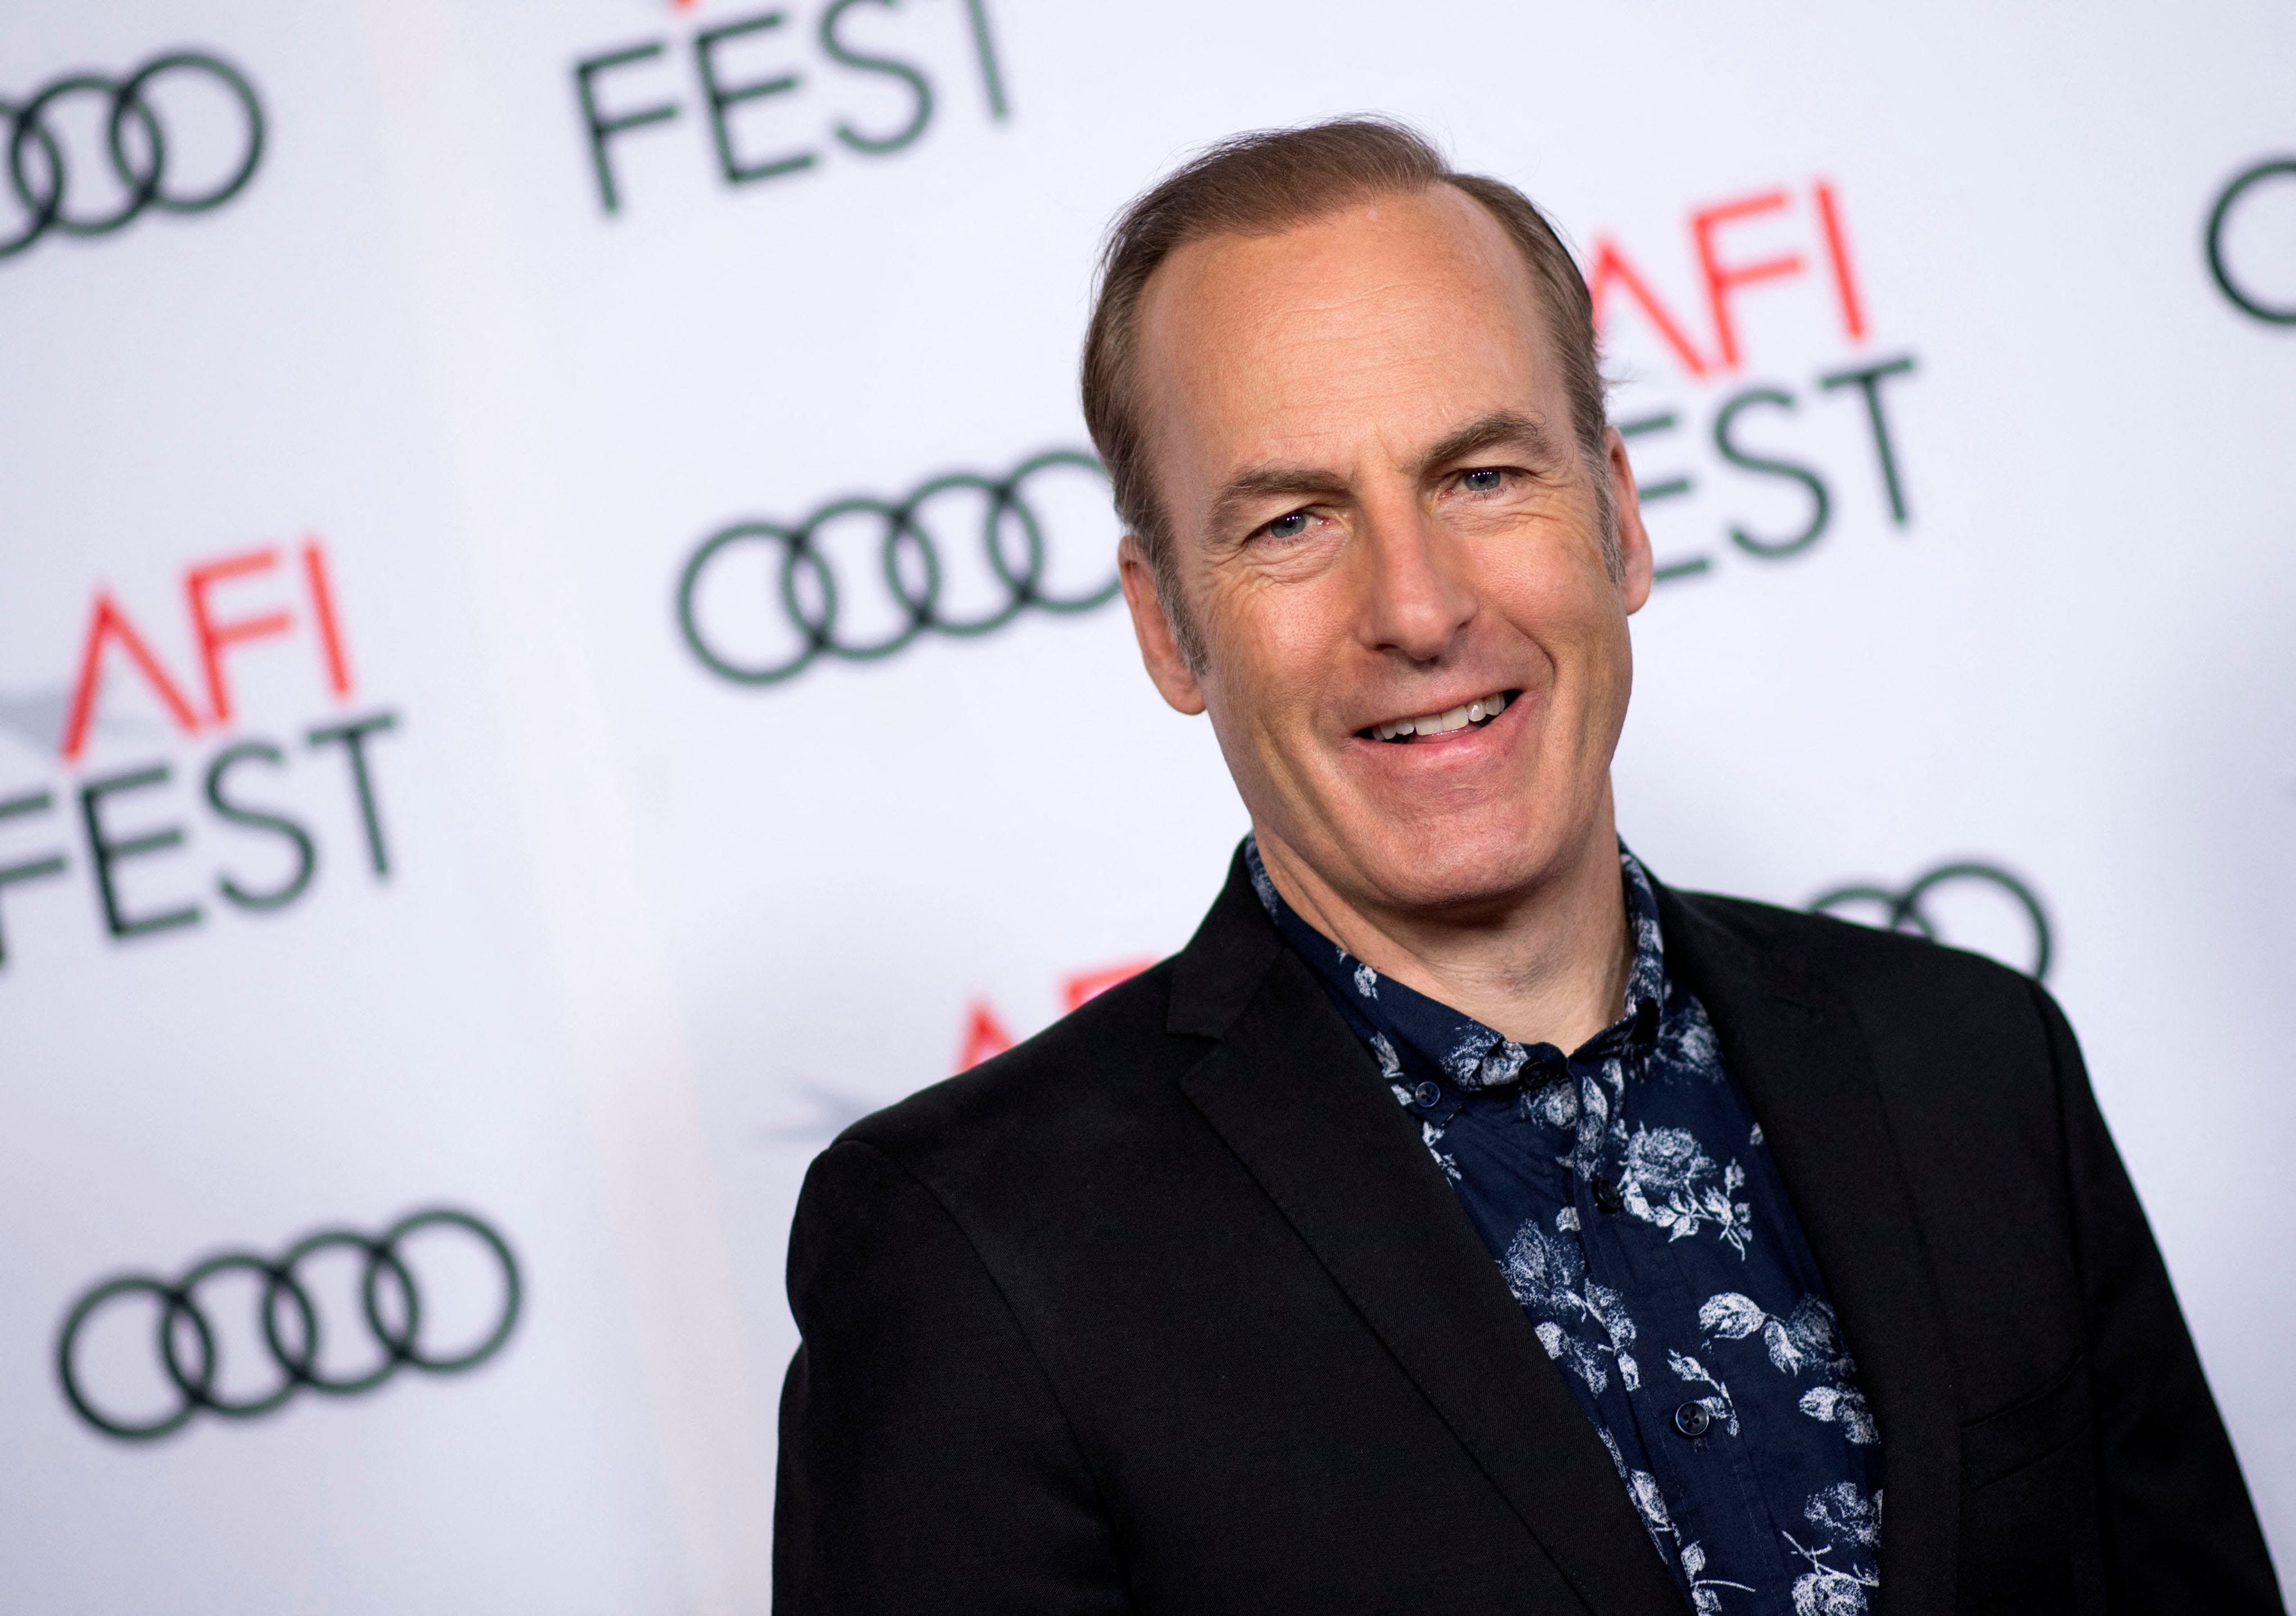 Bob Odenkirk in stable condition after 'heart-related' collapse on 'Better Call Saul' set